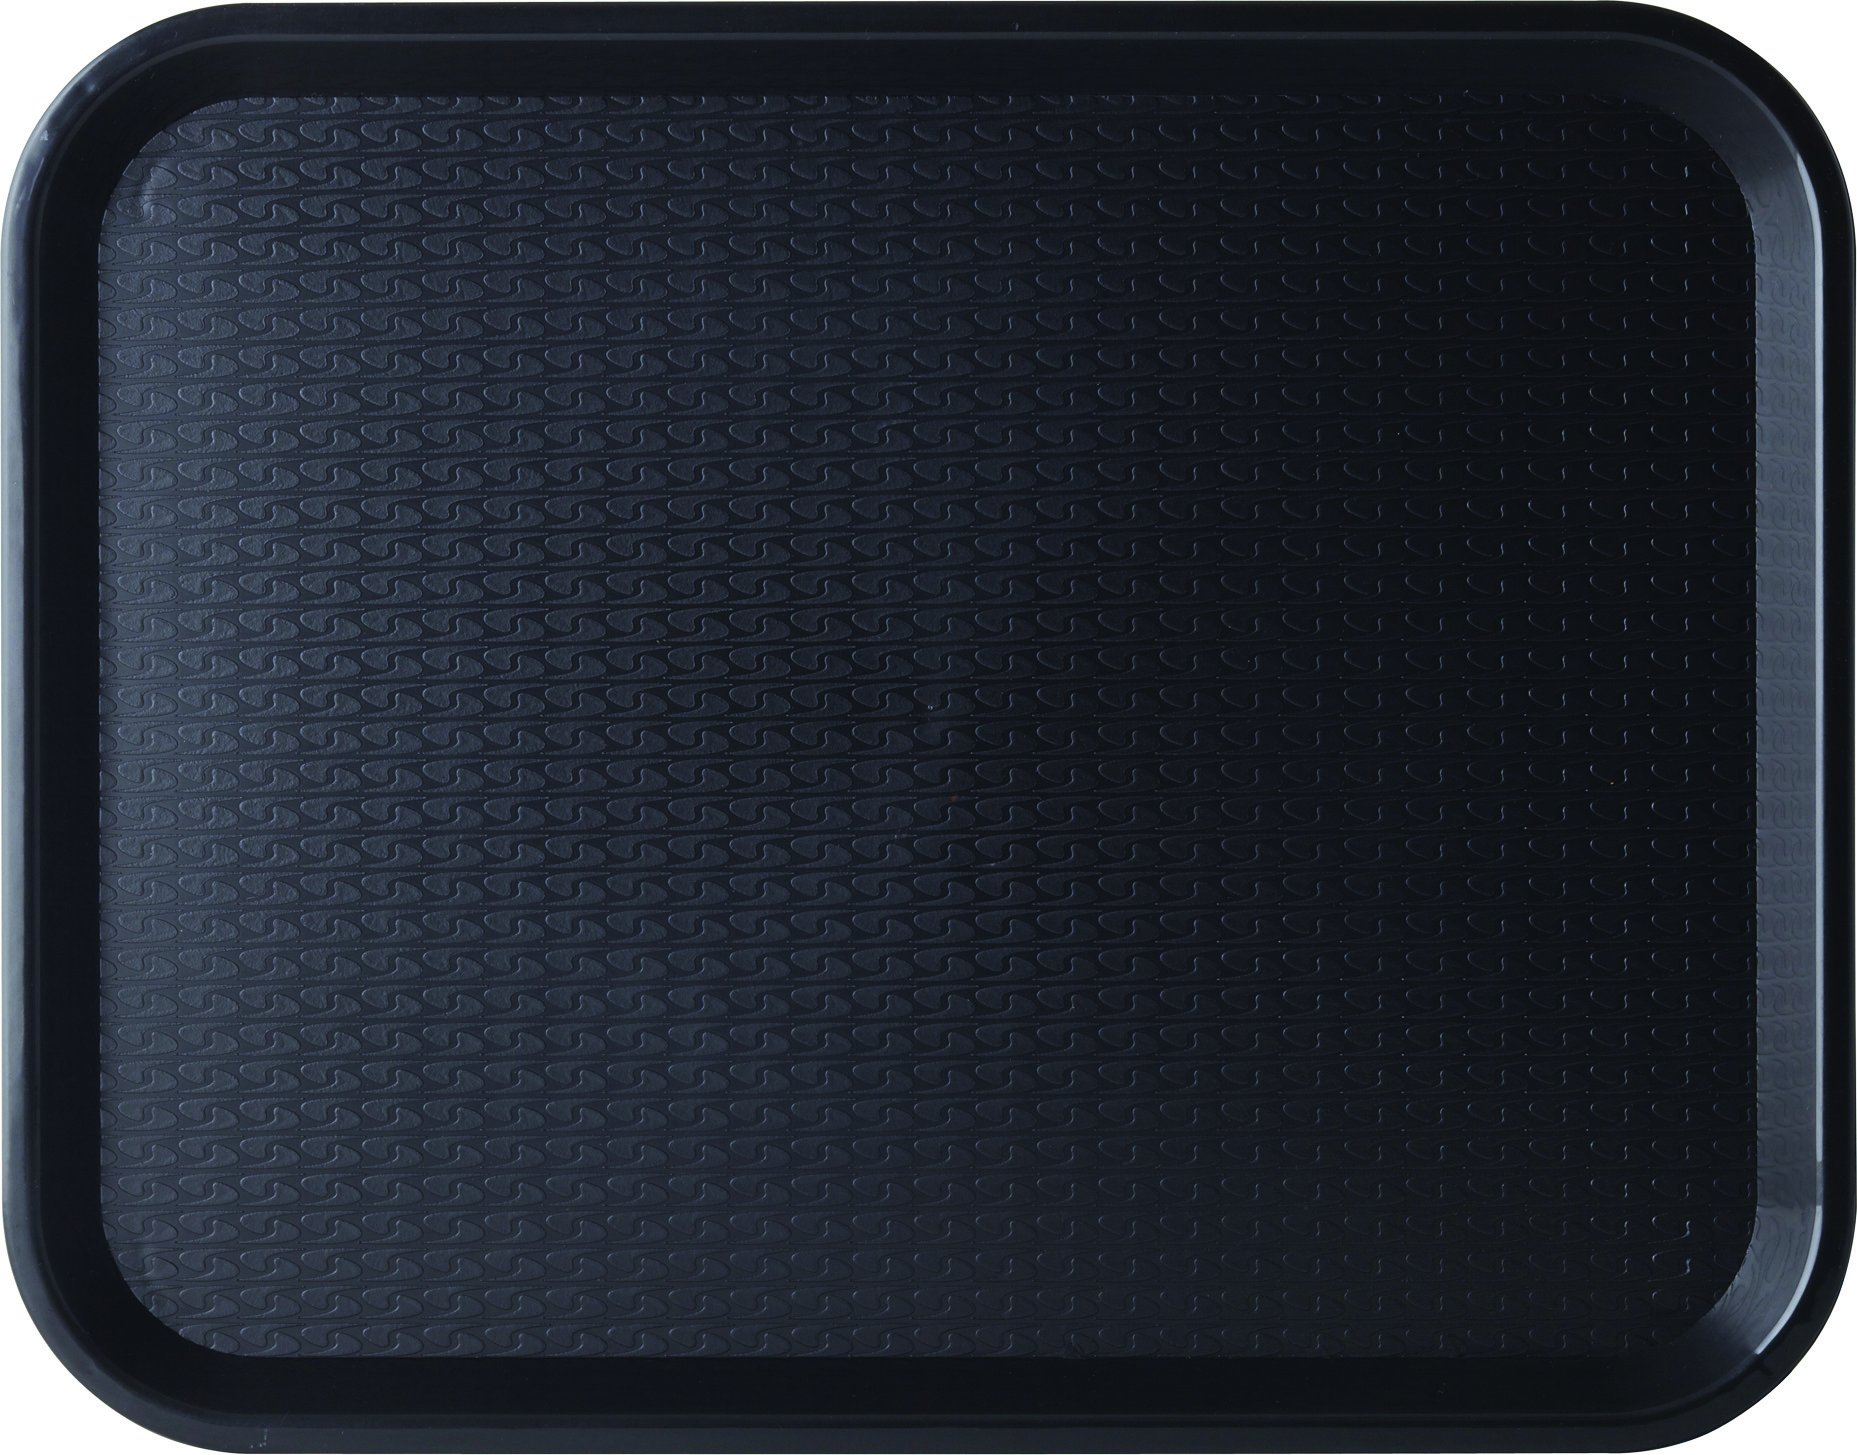 Carlisle CT141803 Café Standard Cafeteria / Fast Food Tray, 14'' x 18'', Black (Pack of 12)